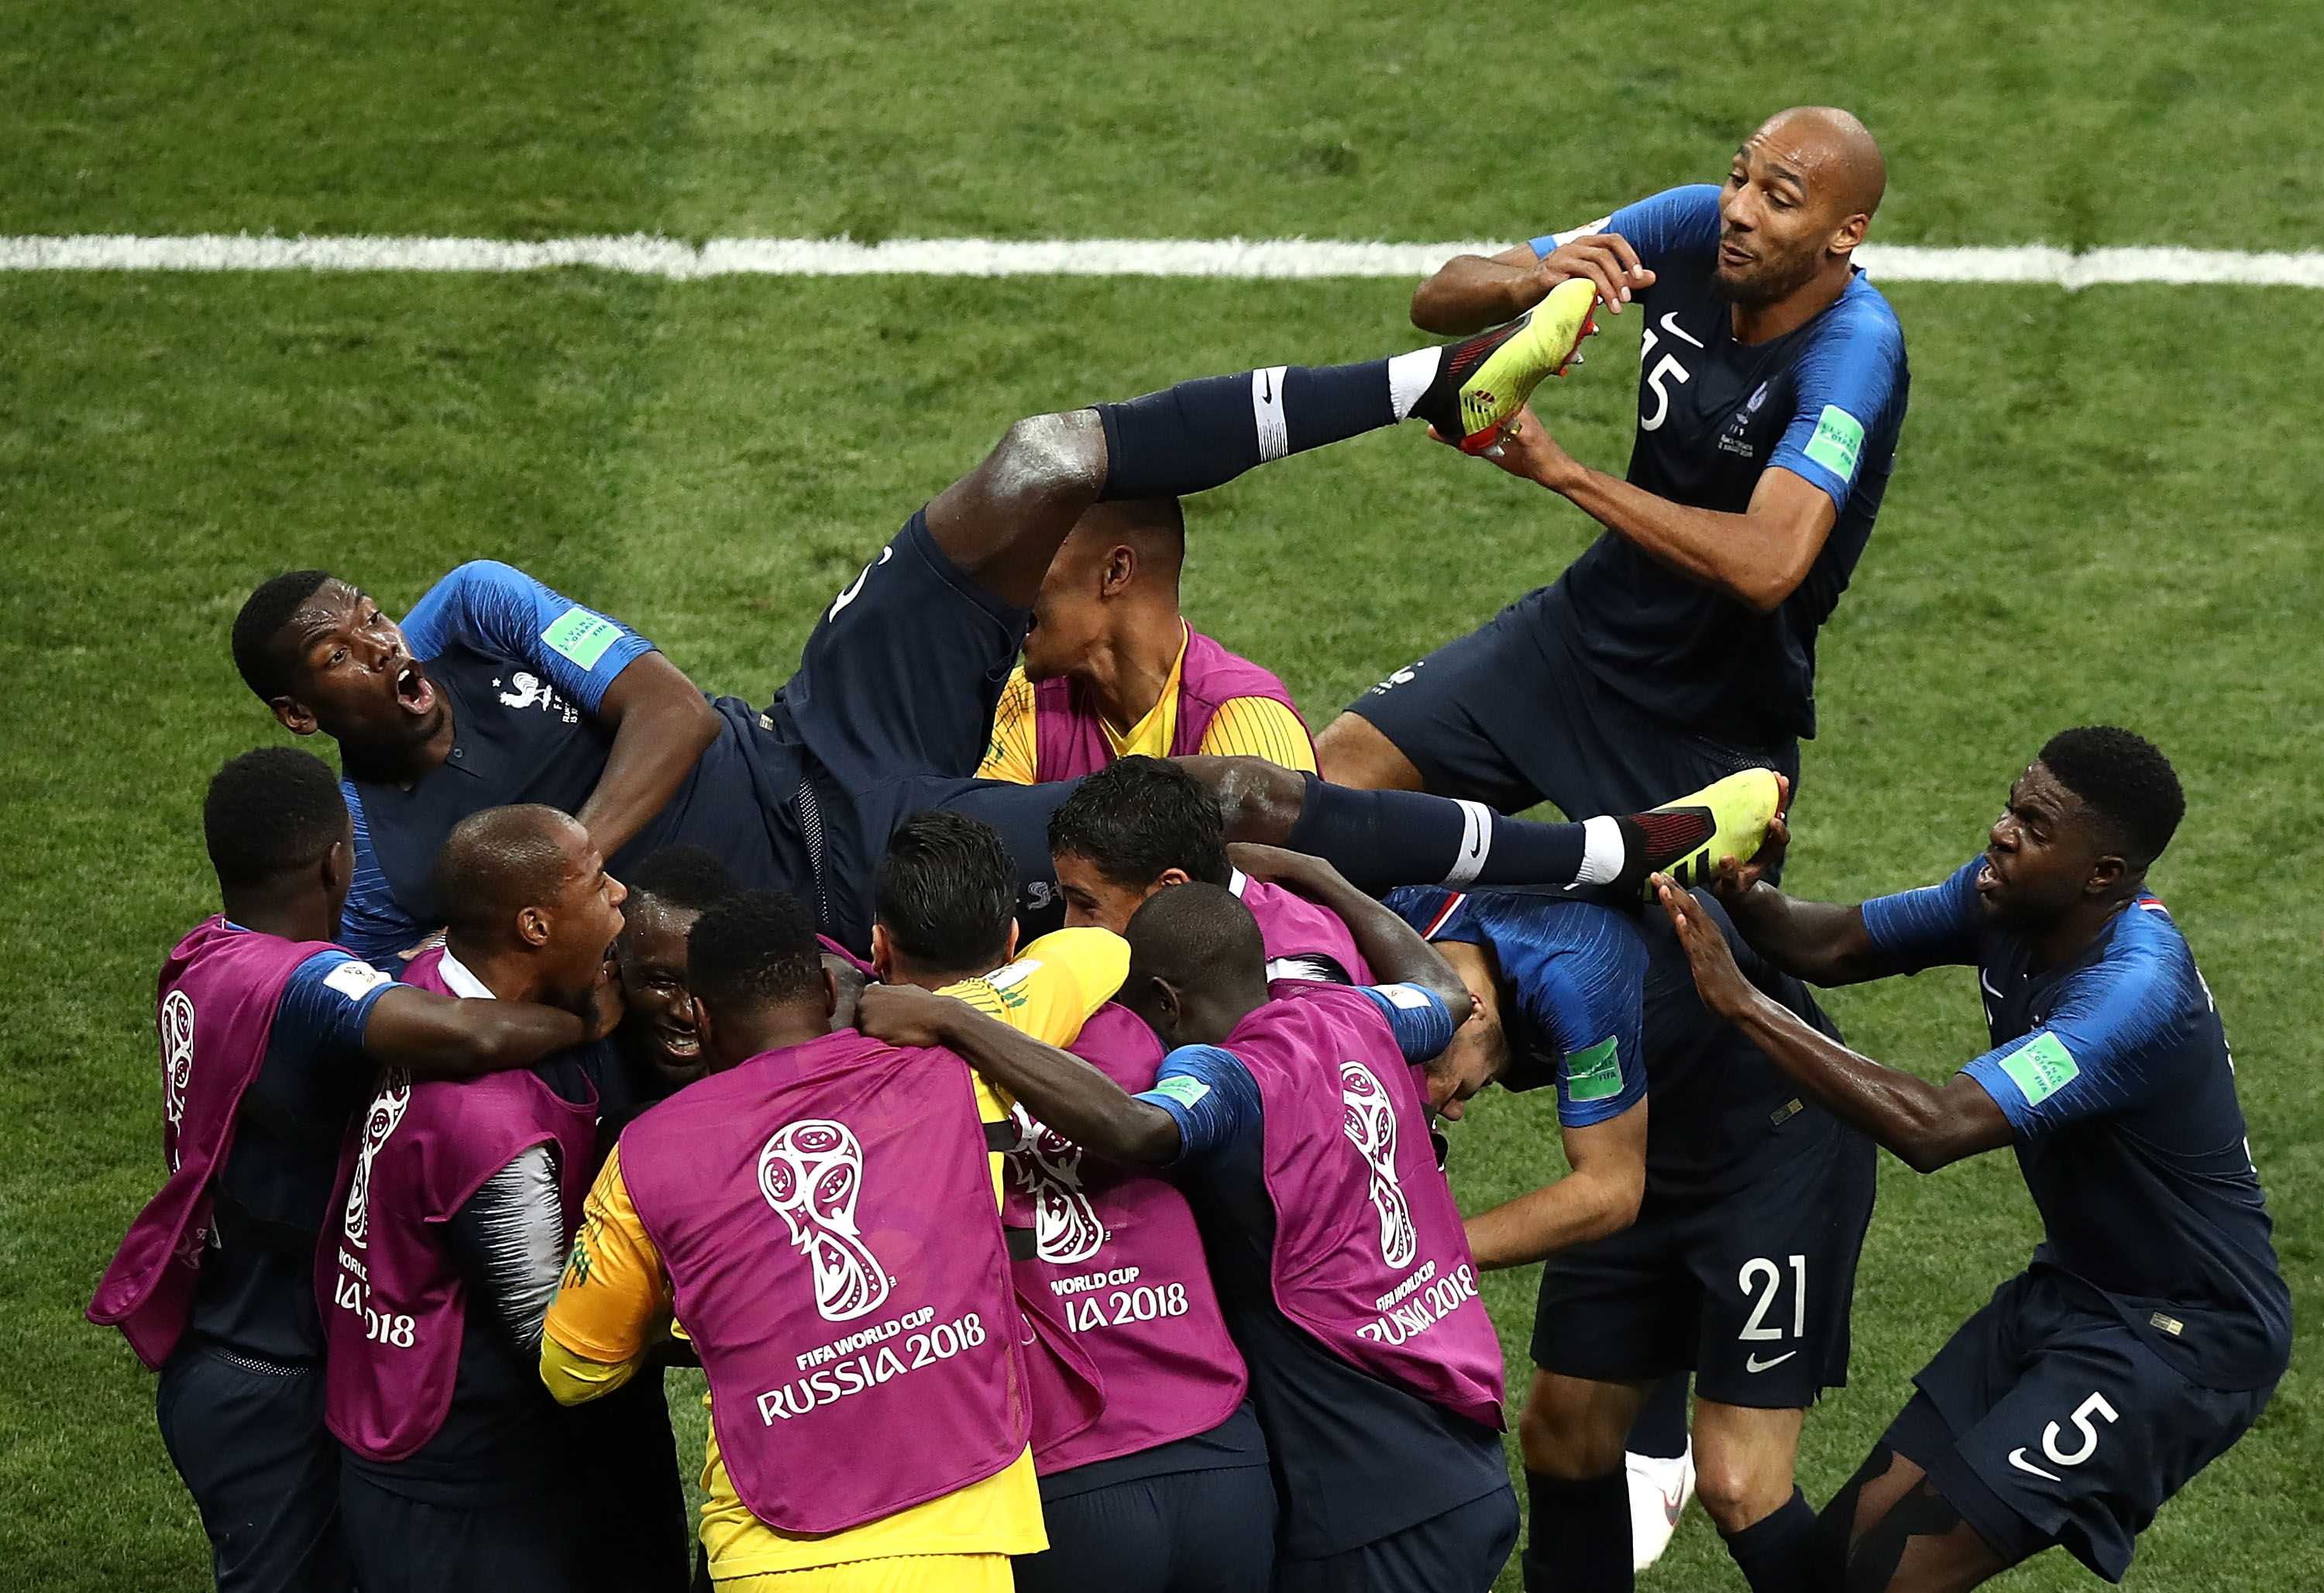 Paul Pogba was the center of France s diversity and inclusiveness a058362a2